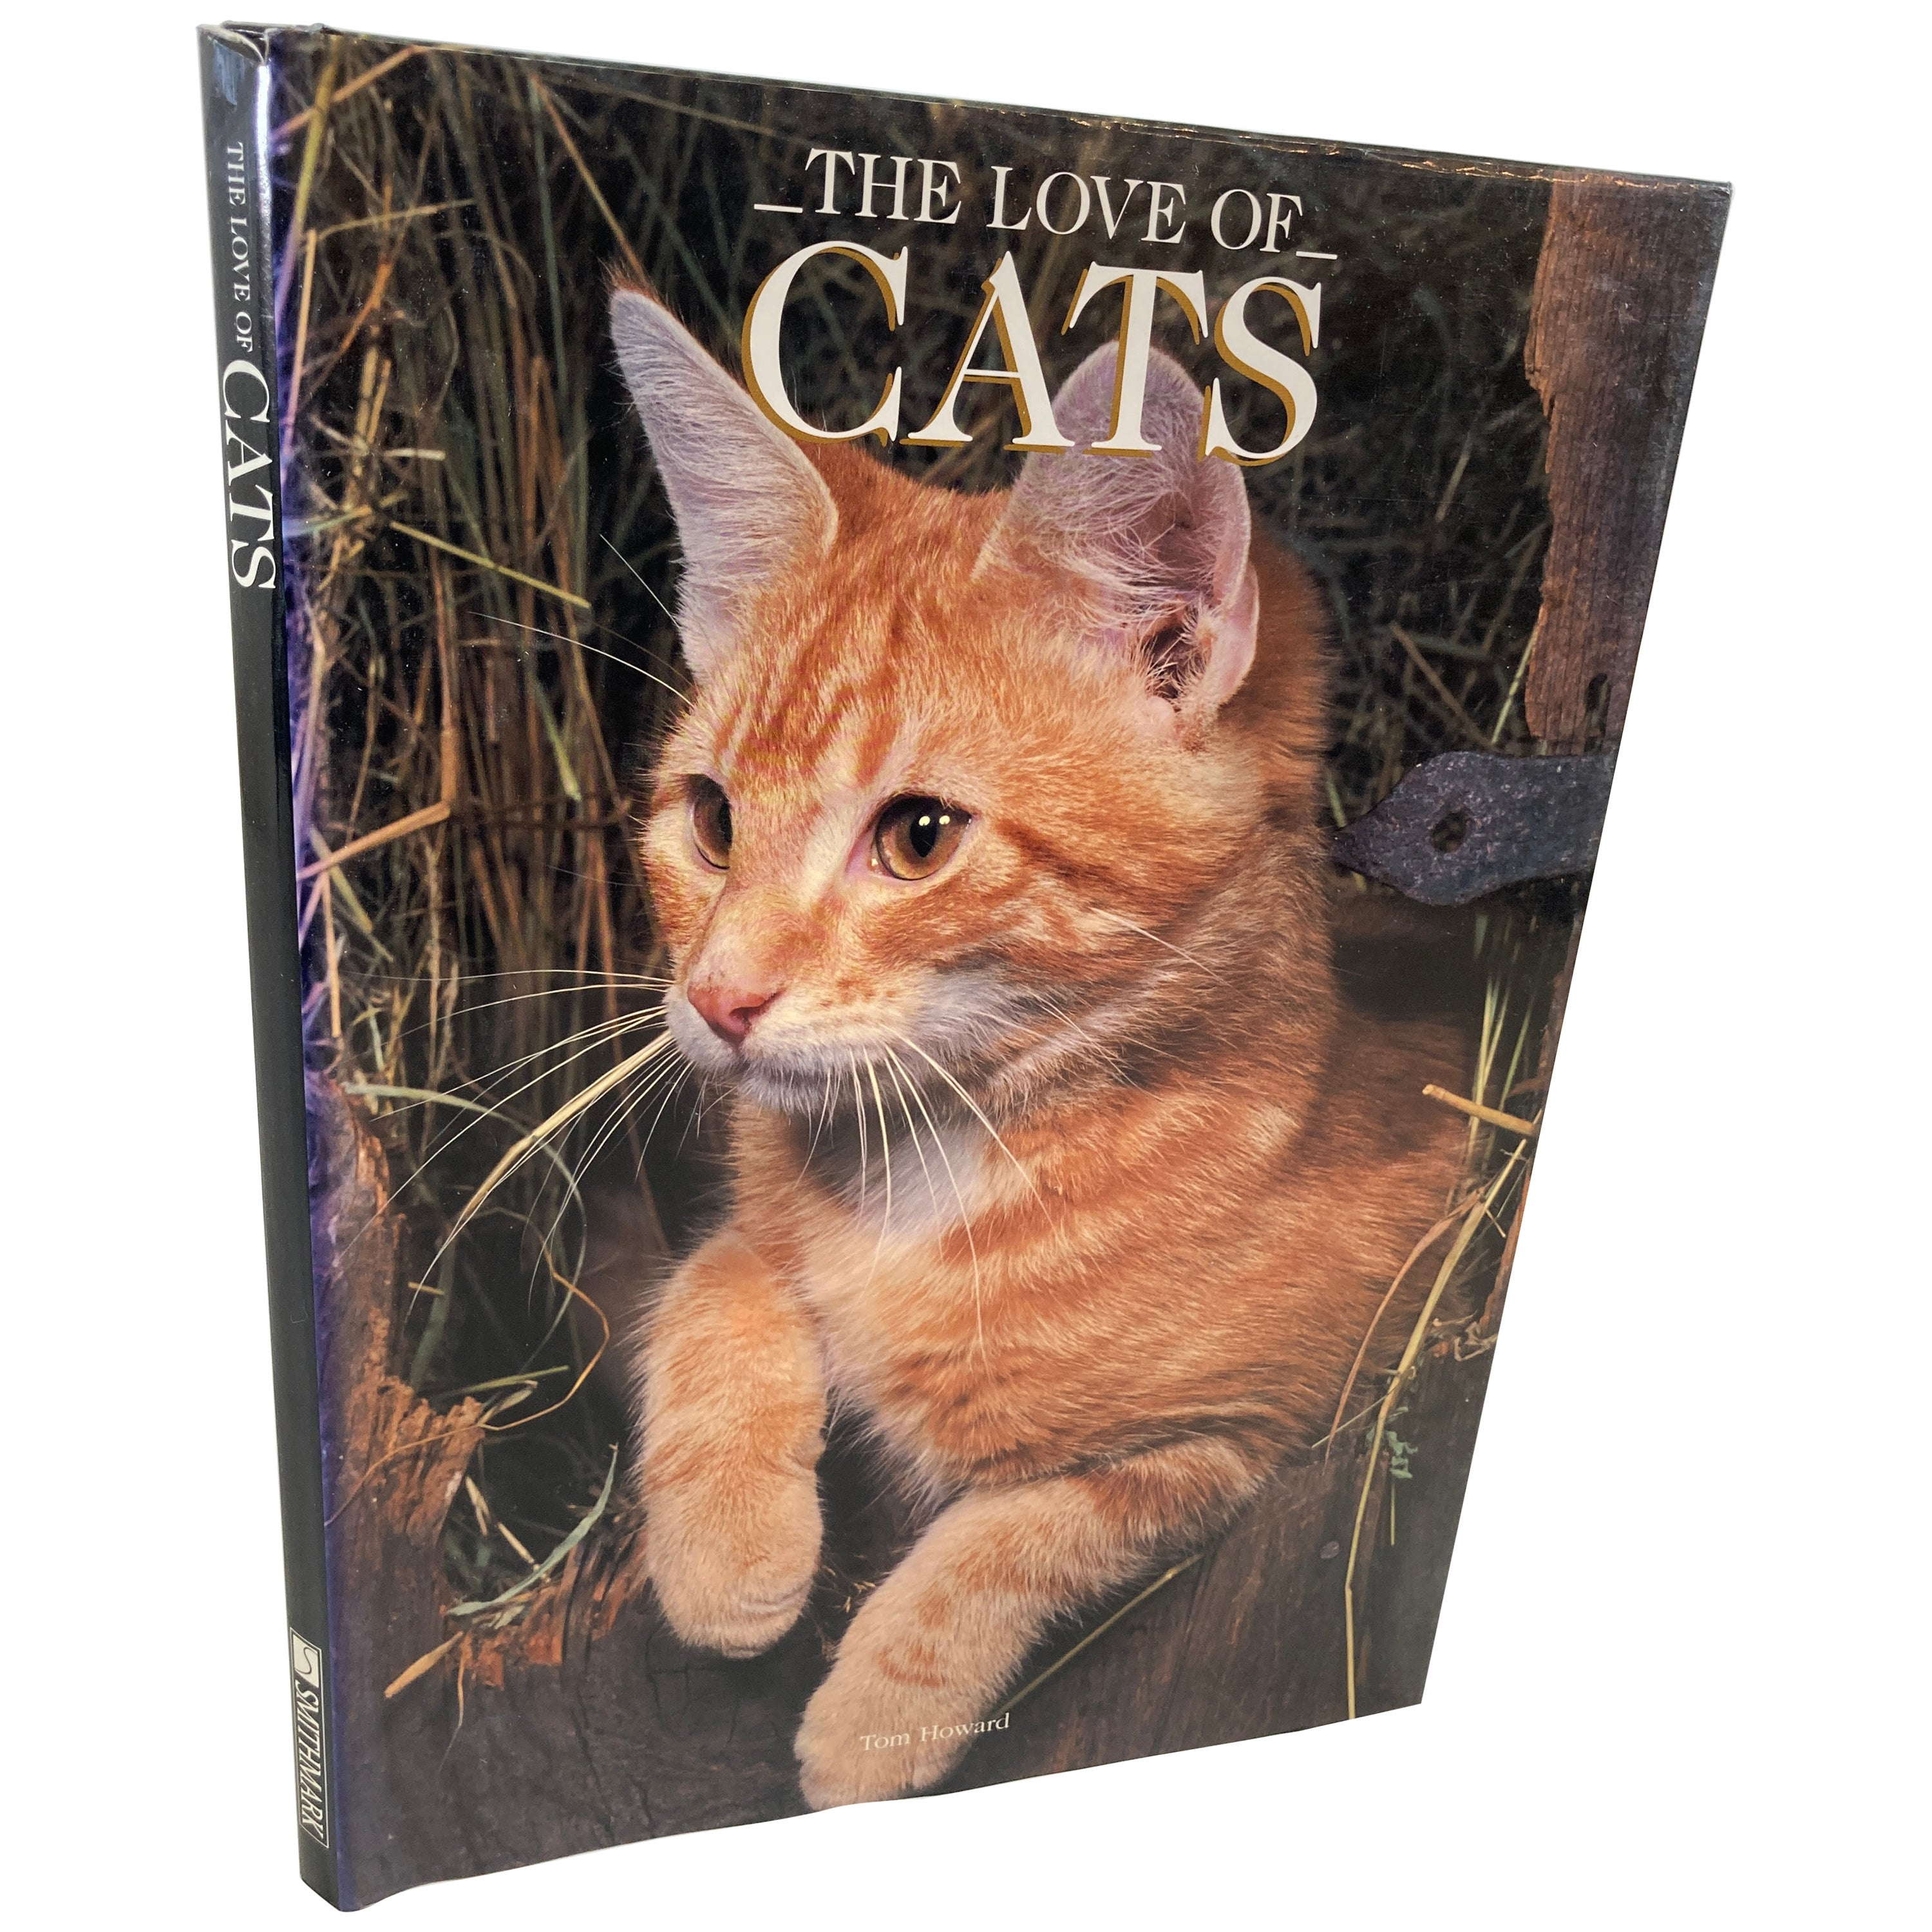 Love of Cats by Tom Howard Hardcover Book